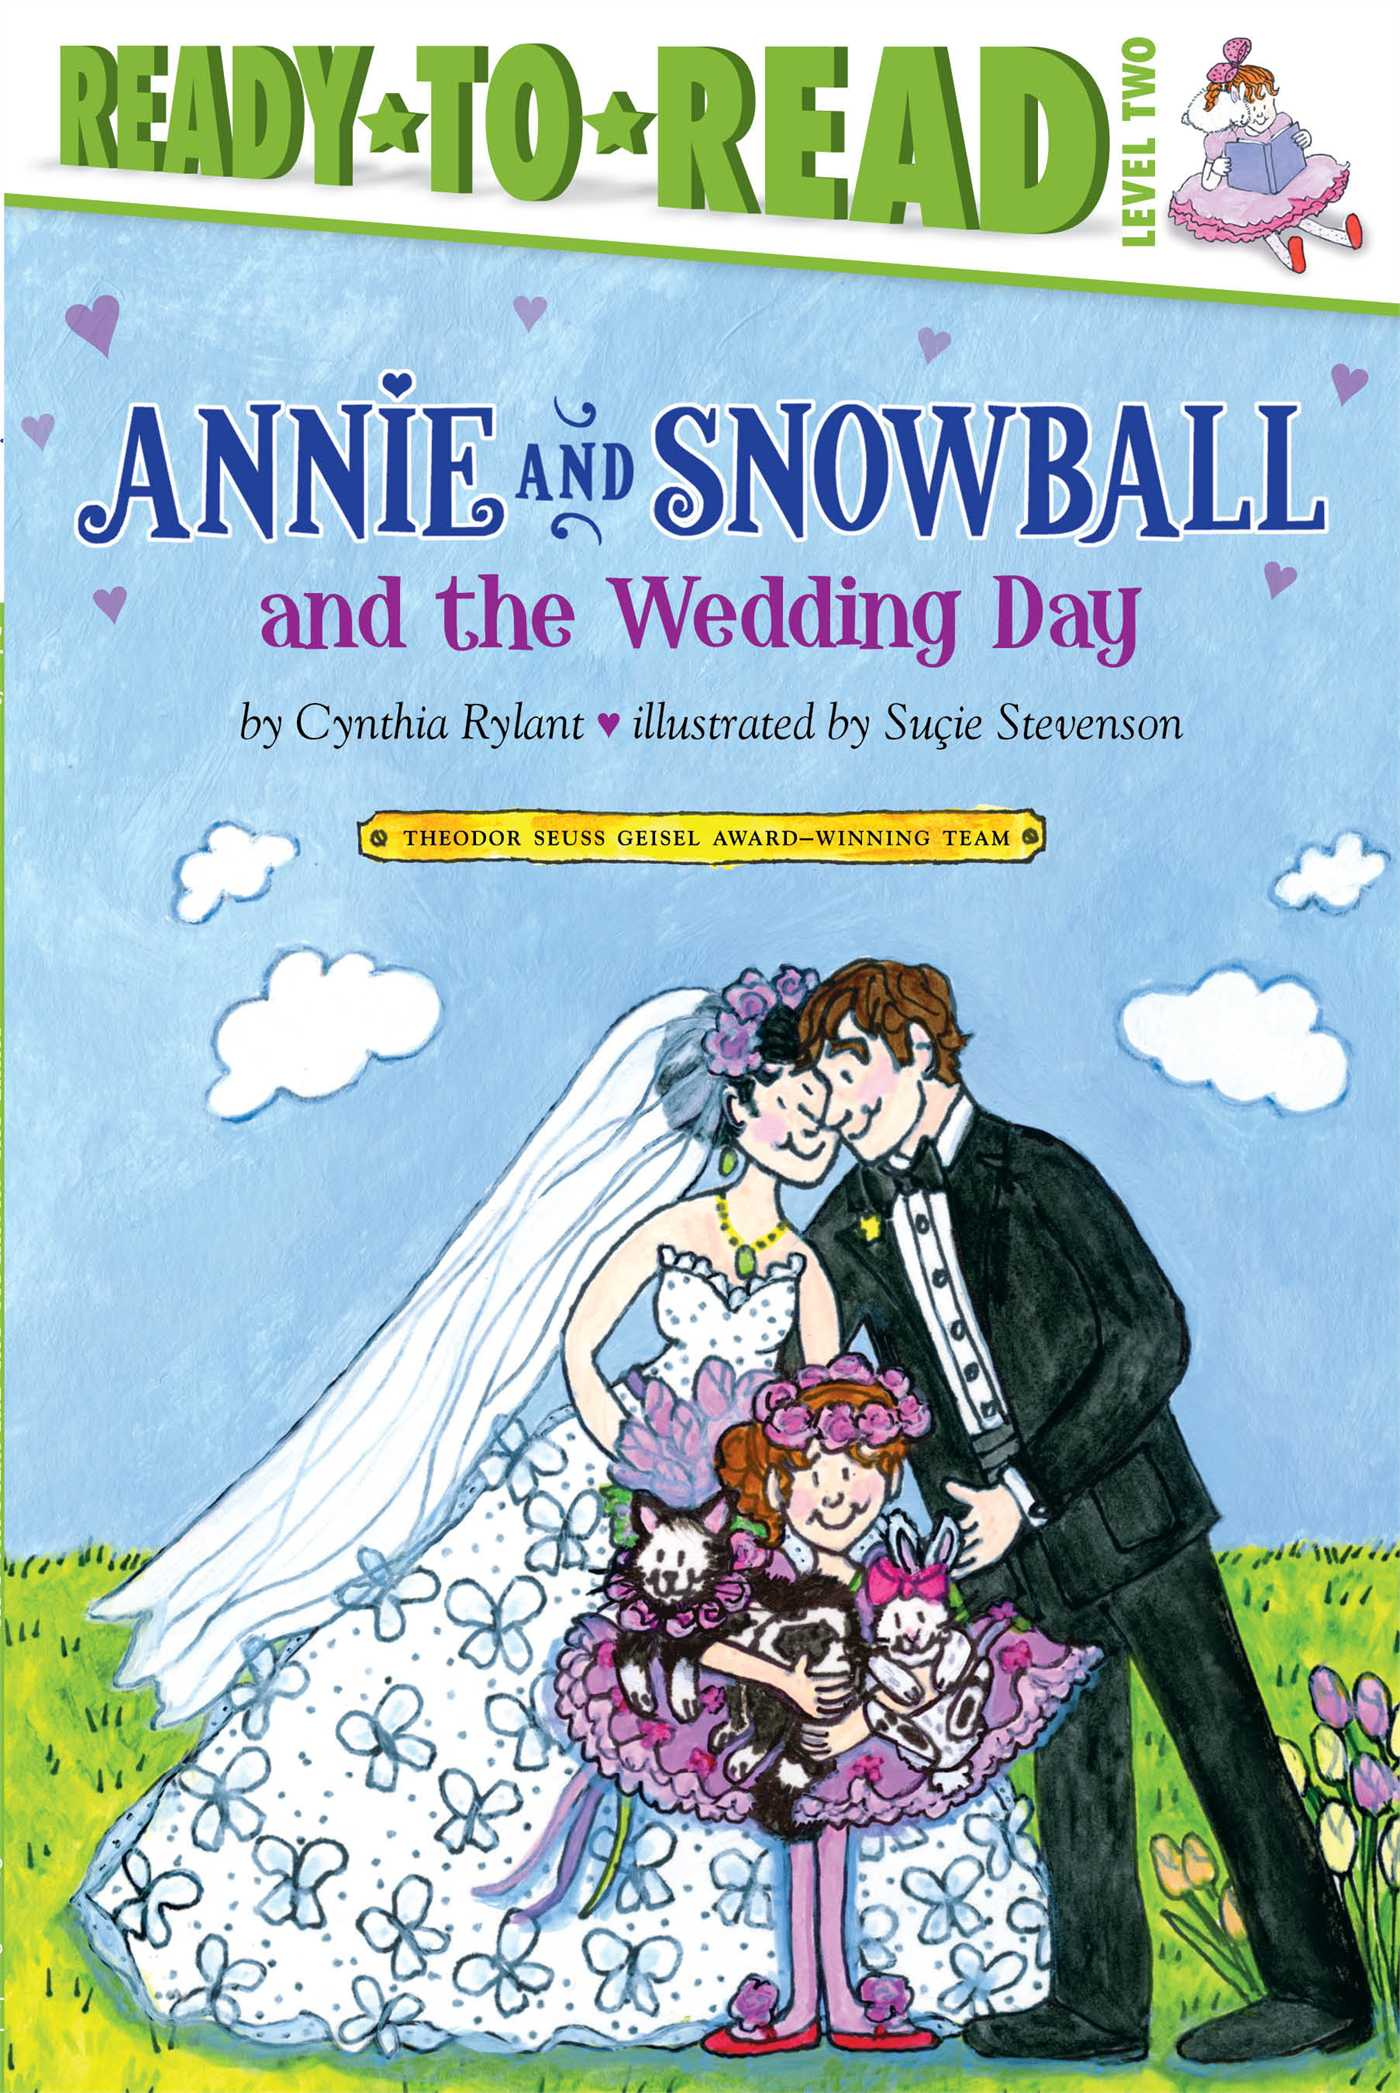 Annie-and-snowball-and-the-wedding-day-9781416982494_hr